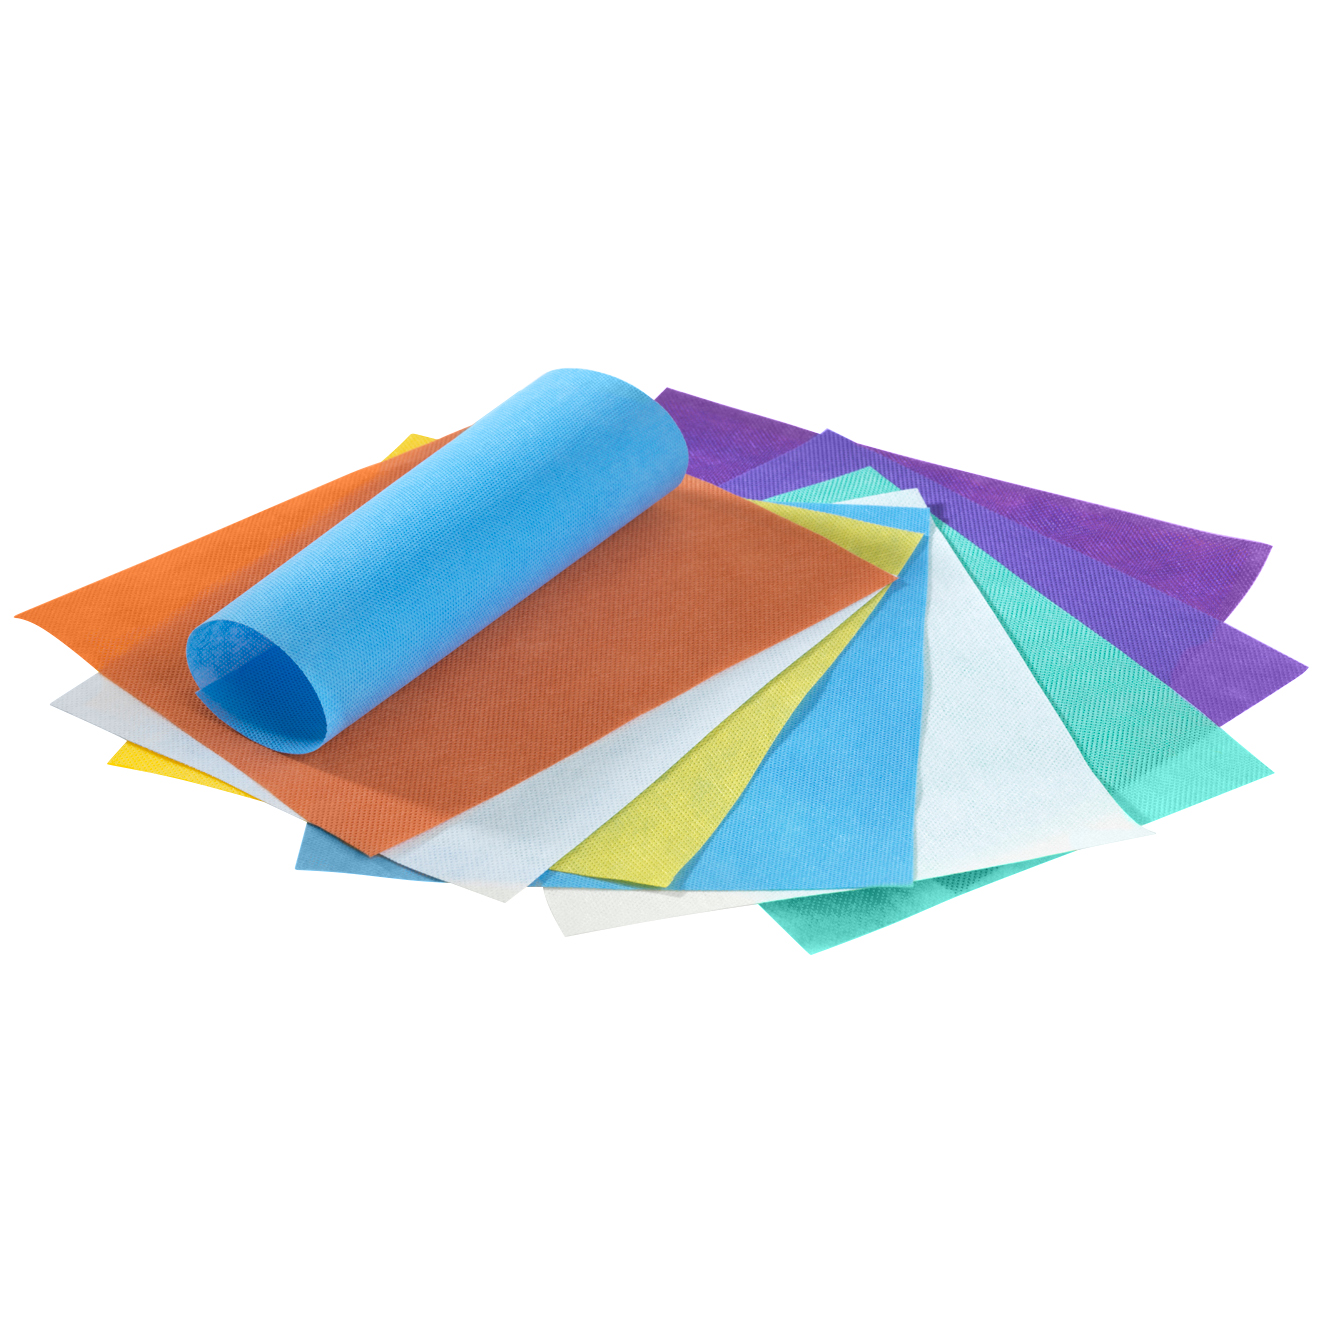 Wrapping Material Image